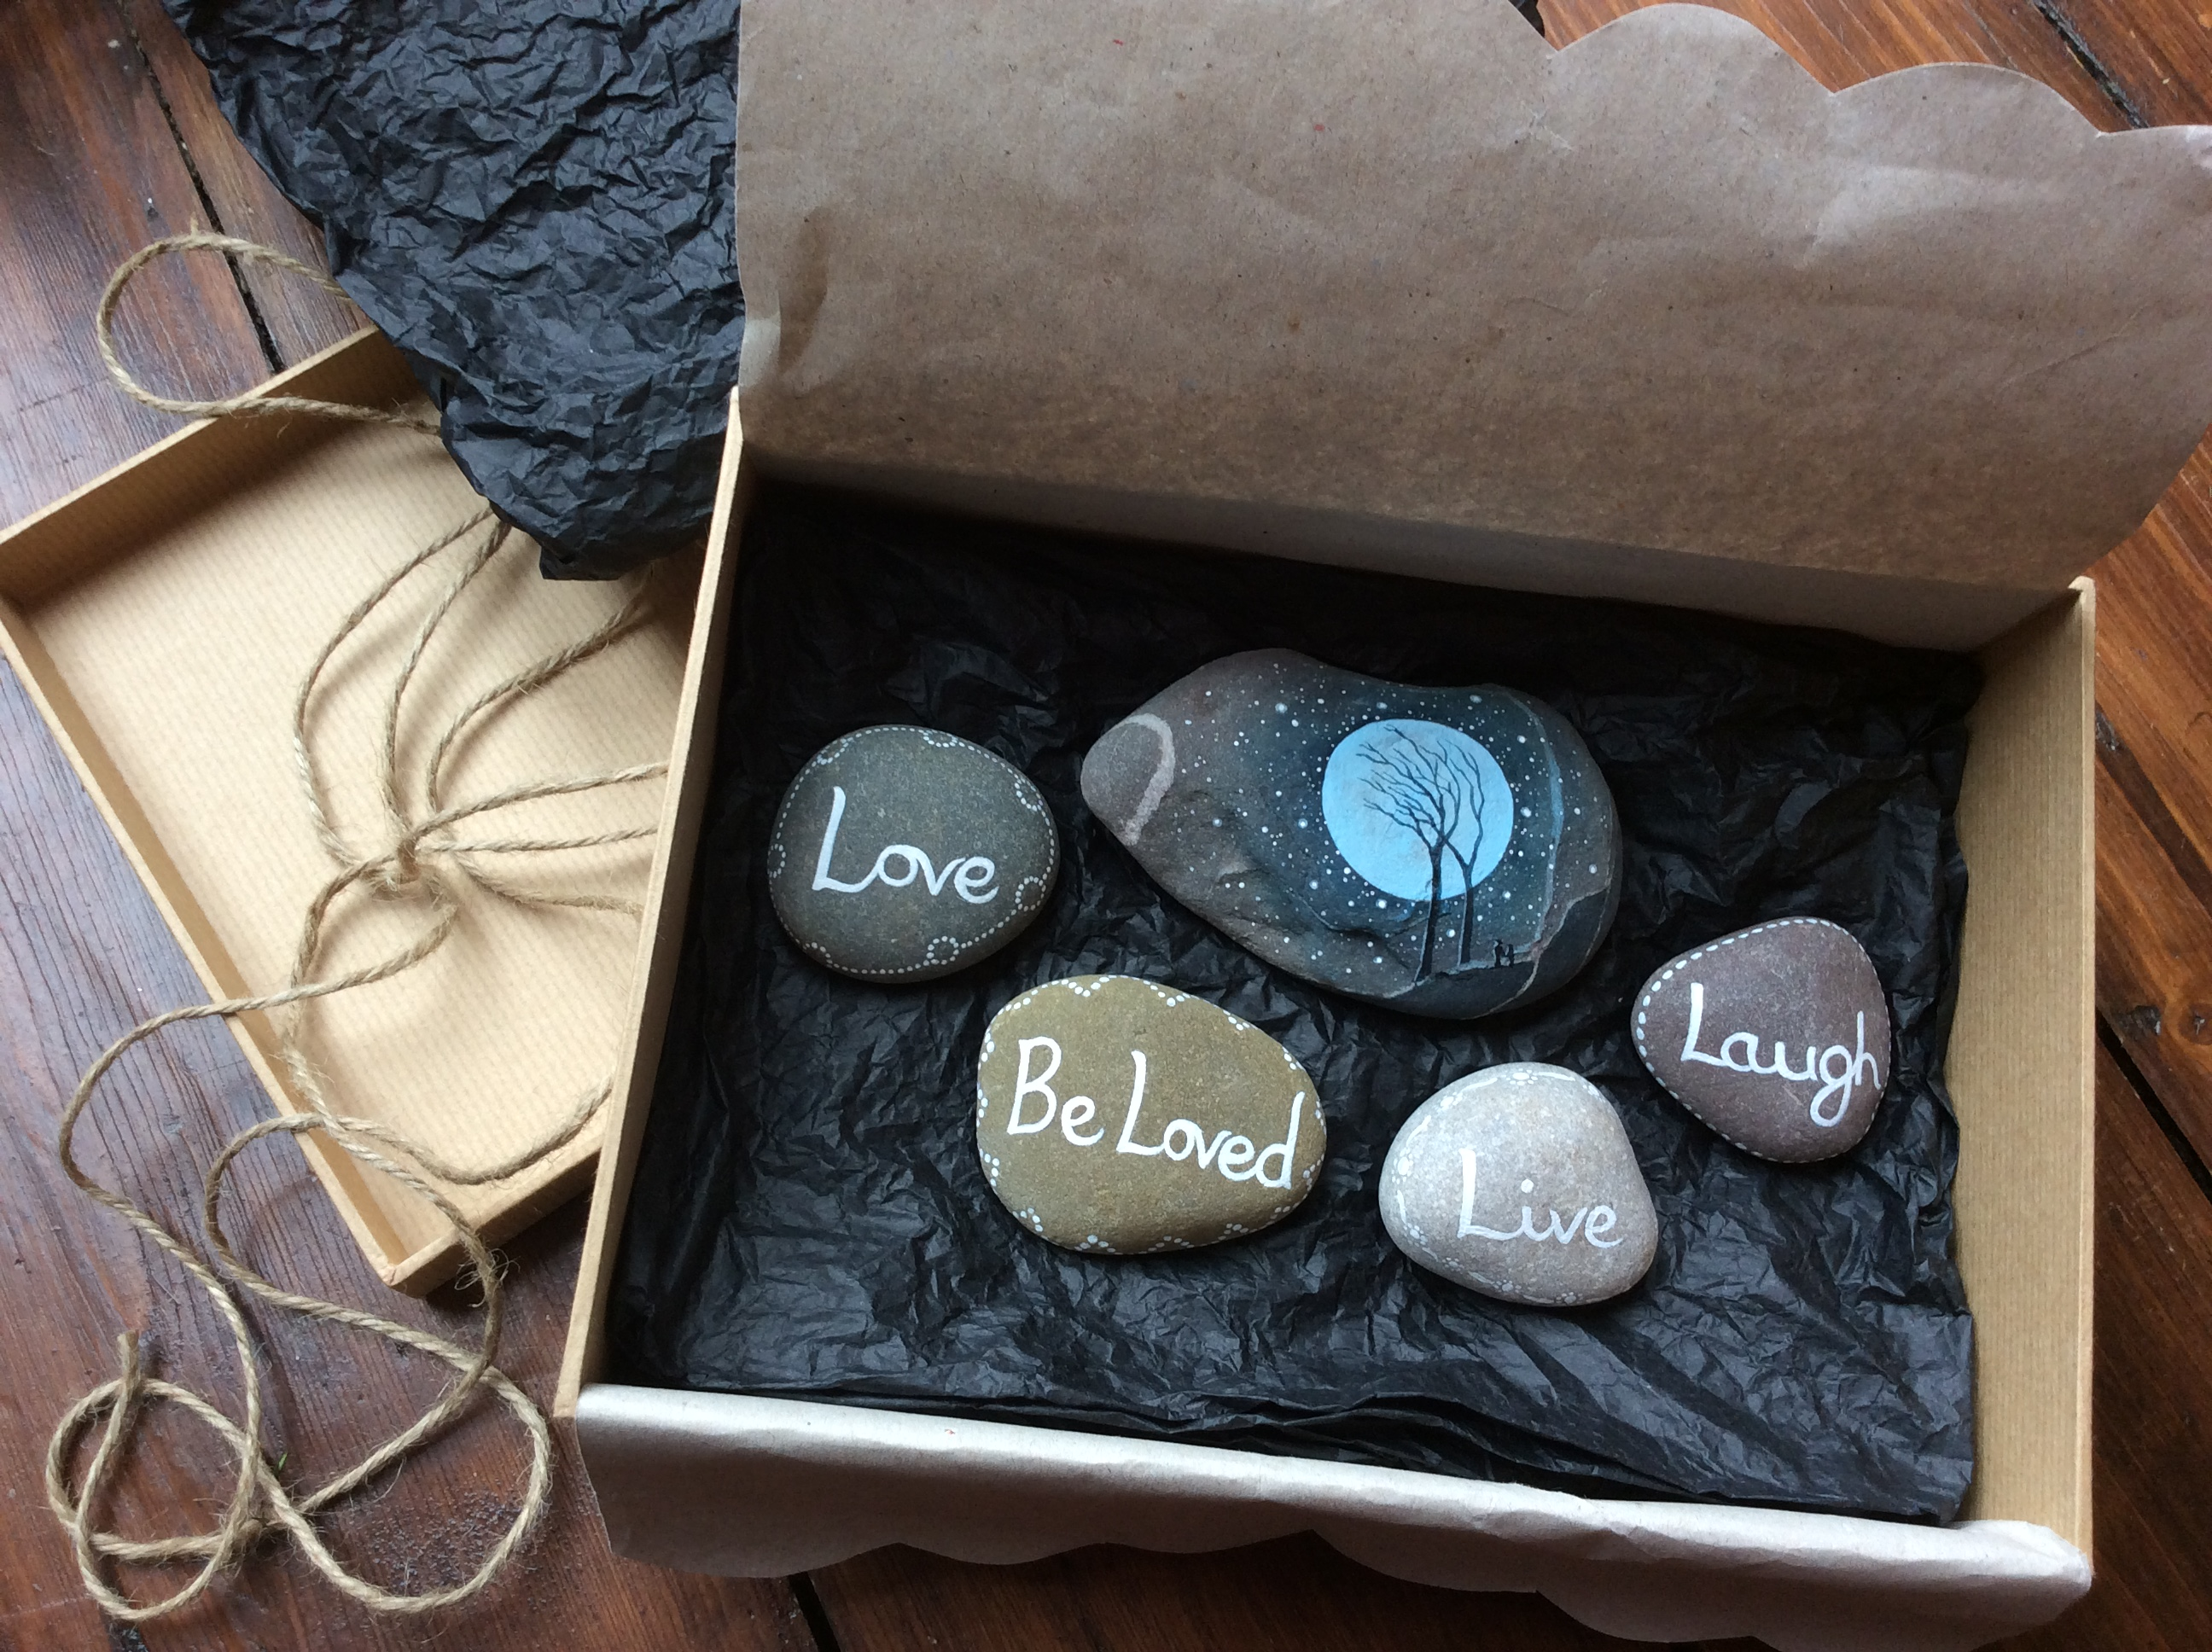 'Love, Be Loved, Live, Laugh' Stones